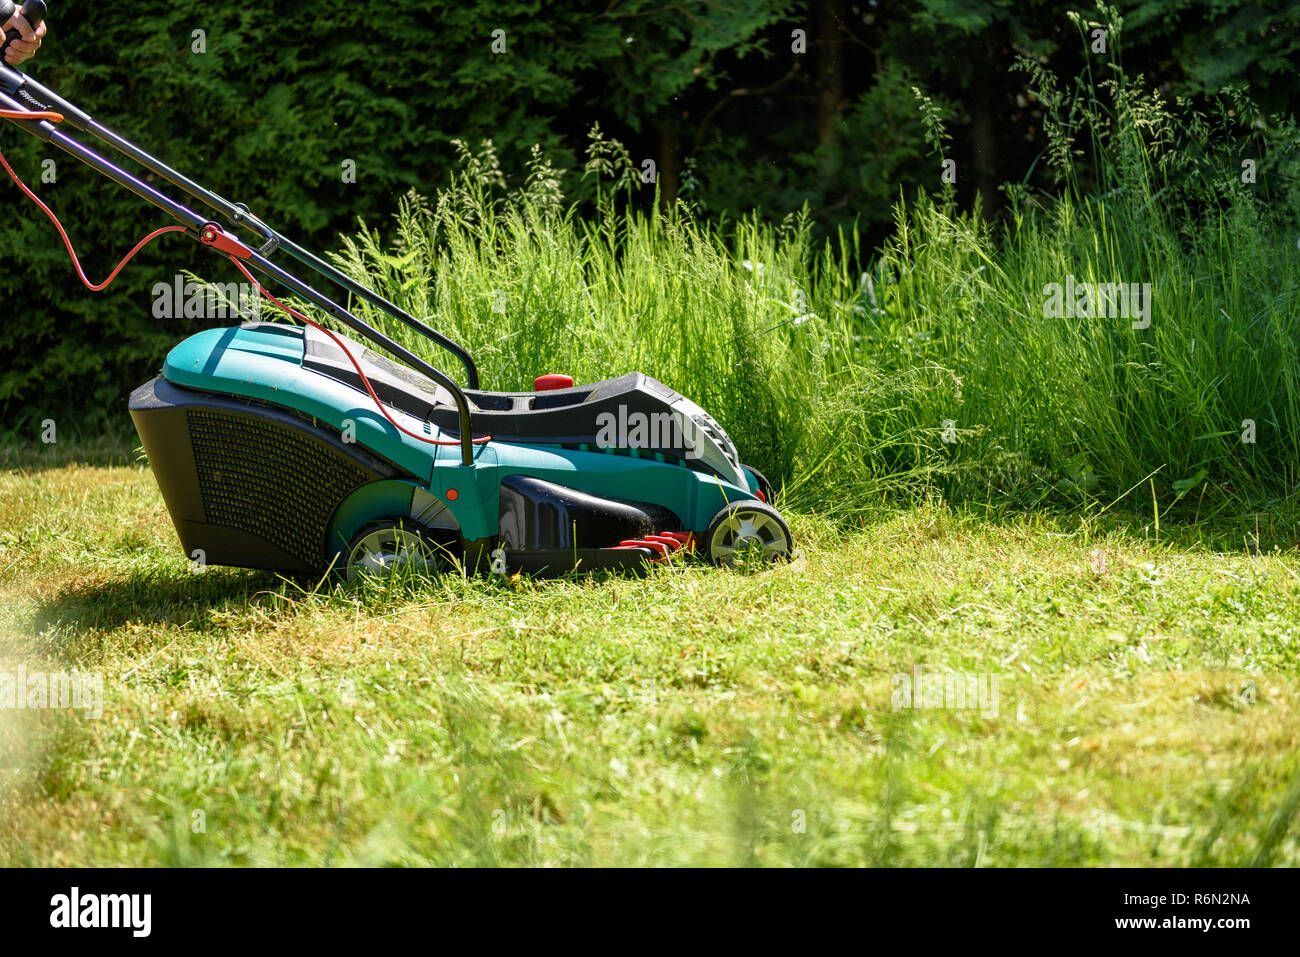 Man cutting grass with  an electro lawnmower in his garden Stock Photo